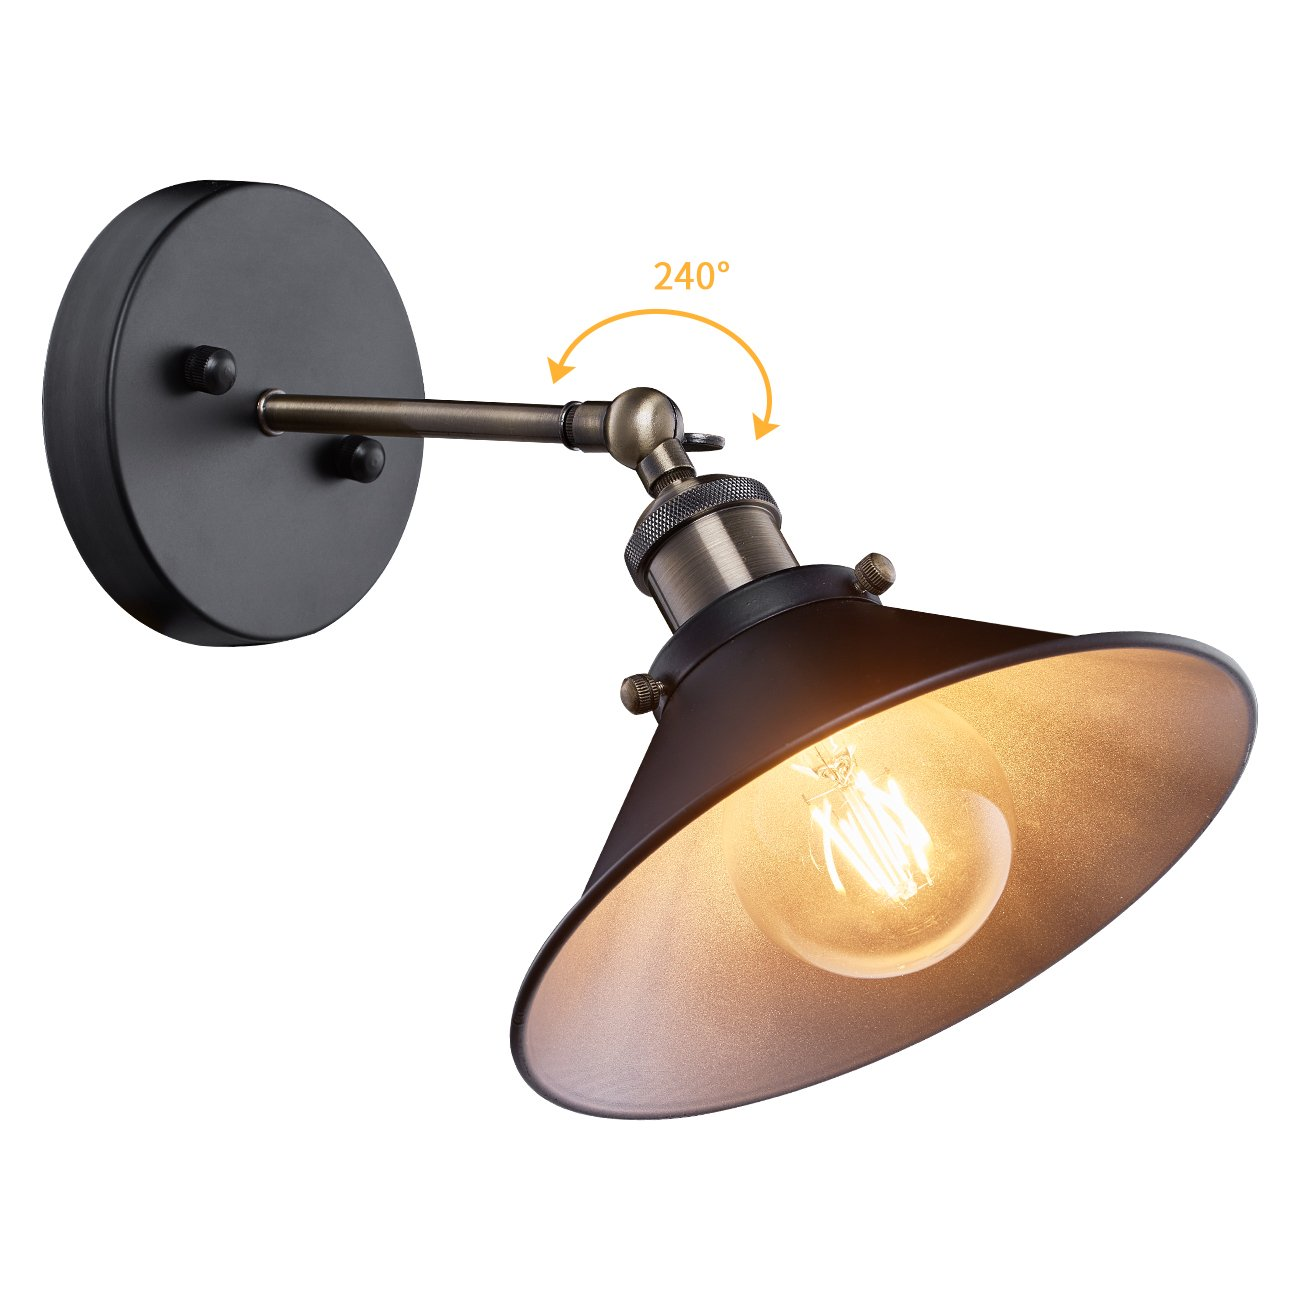 Industrial Wall Sconce, Mini Adjustable Vintage Edison Simplicity Wall Lamp, Loft Style Swing Arm Light Fixtures with Black Metal Shade for Bathroom, Cafe and Club, (NO Plug-in)